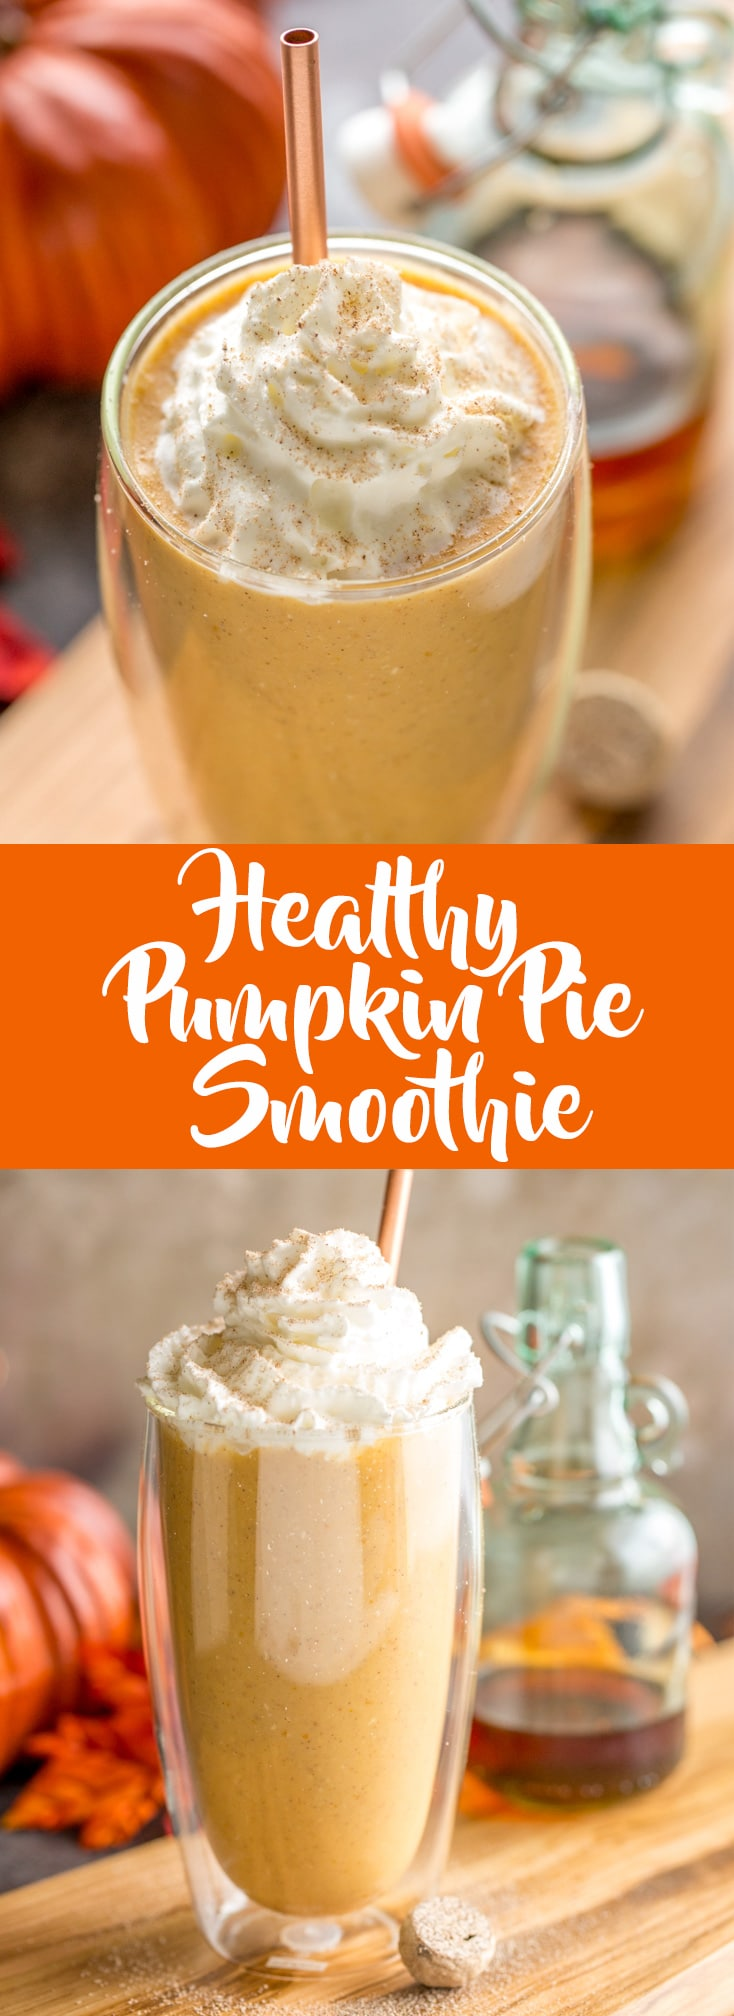 This healthy pumpkin pie smoothie will give you your pumpkin spice fix without all the empty calories. | Pumpkin Smoothie | Healthy Pumpkin recipes | Pumpkin Spice Recipe | Fall Smoothies | Fall Recipes | Recipes using canned pumpkin | Leftover Pumpkin Recipes